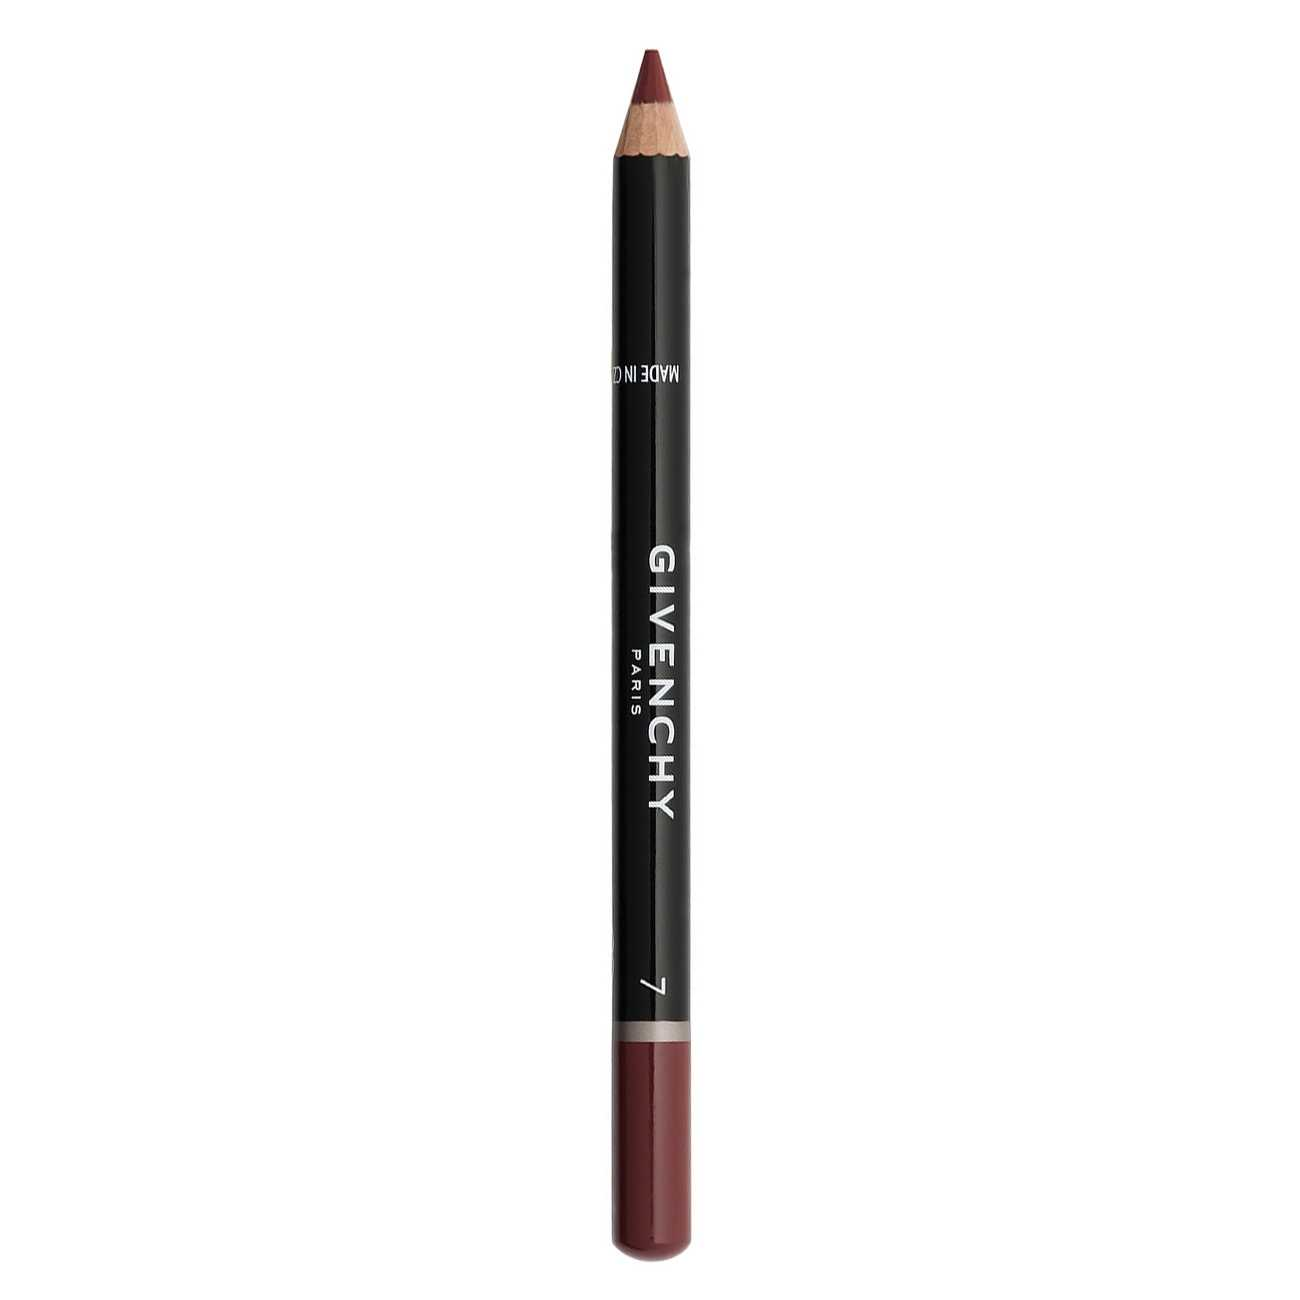 Lip Liner 2 G Blackberry 7 Givenchy imagine 2021 bestvalue.eu